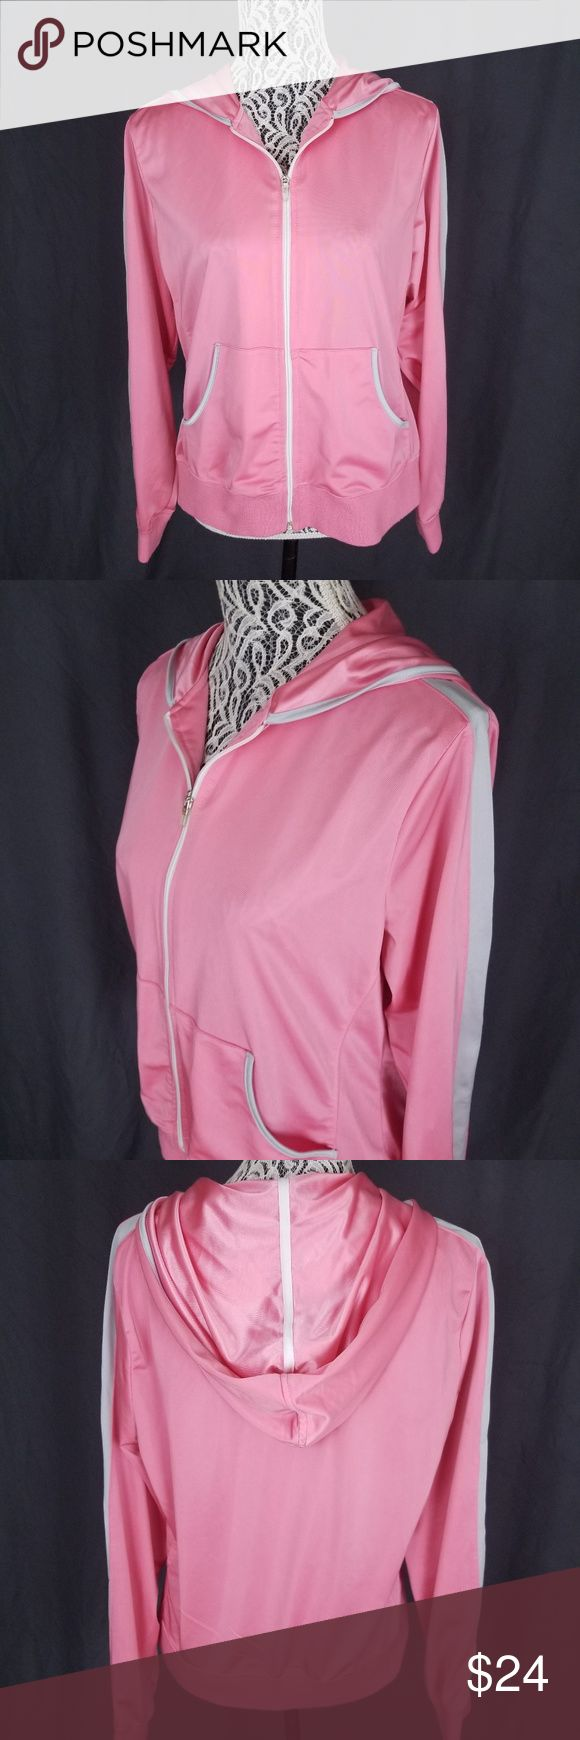 Gloria Vanderbilt Sport Pink Zip Up Hooded Jacket Gloria Vanderbilt Sport Pink Zip Up Hooded Jacket with White Trim - Size XL  Features: Silky feel, comfortable material Track style jacket Zip up front closure Hooded Front pockets Pink with white trim  Excellent used condition, gently worn, no major signs of wear or flaws (EUC).  Marked Women's XL Gloria Vanderbilt Tops Sweatshirts & Hoodies